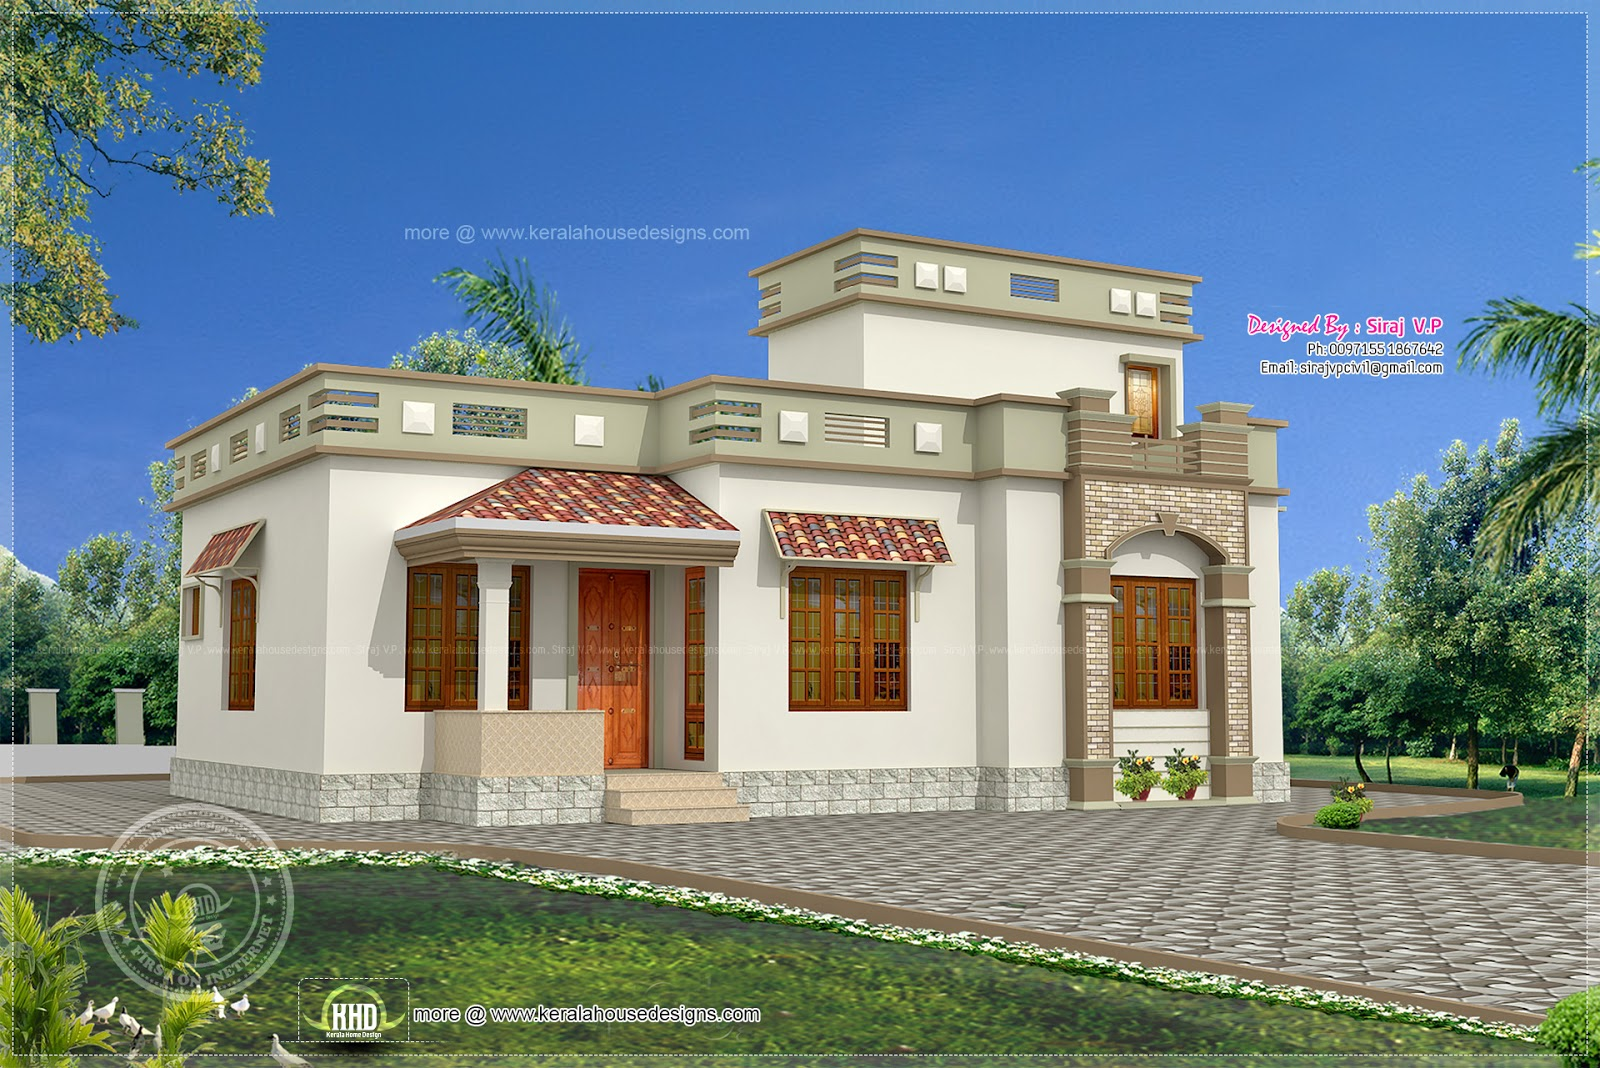 Low budget kerala style home in 1075 kerala home design and floor plans Home design and budget